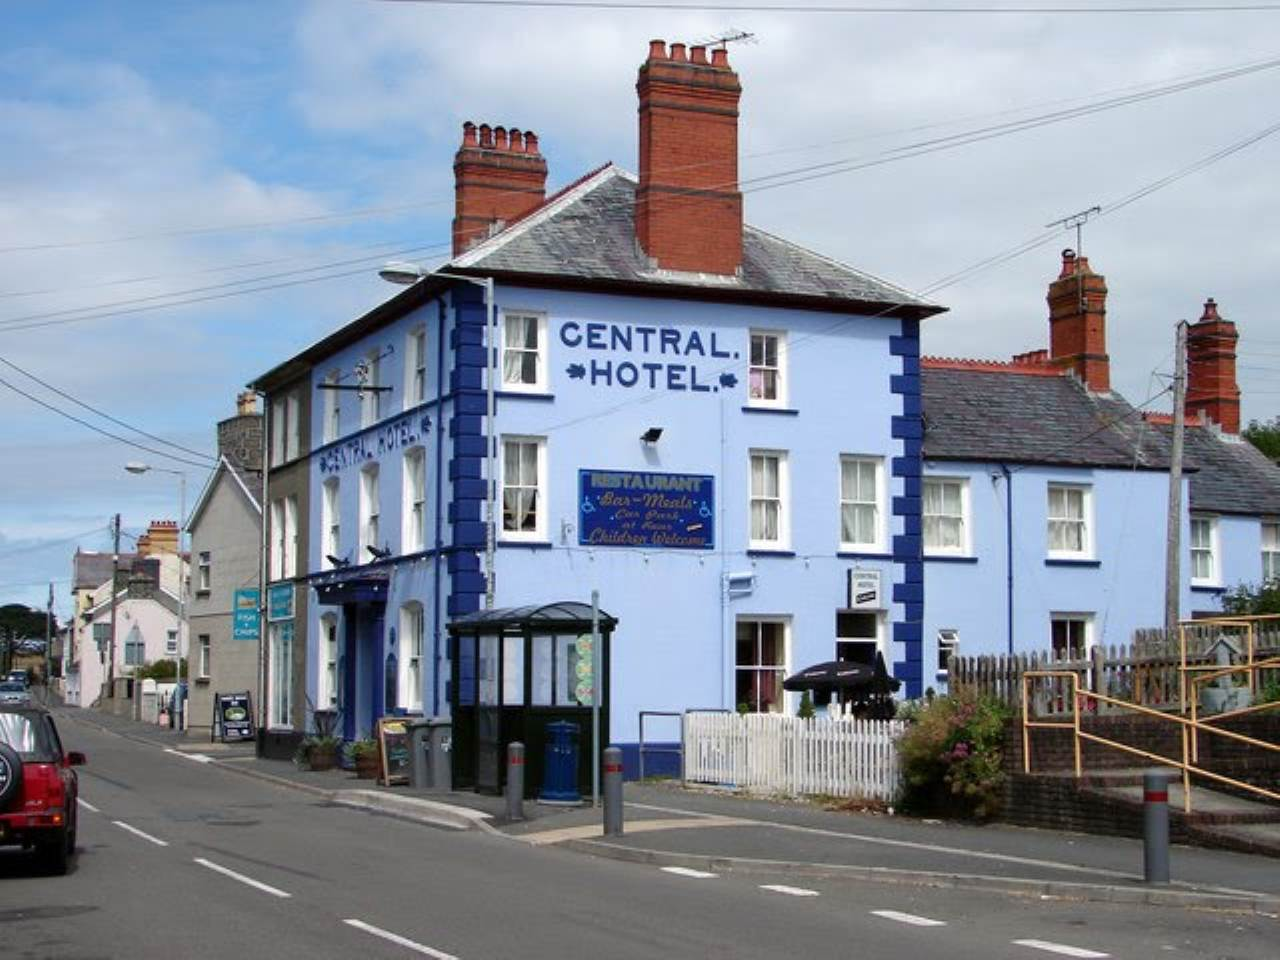 Commercial-property to rent in Llanon, SY23